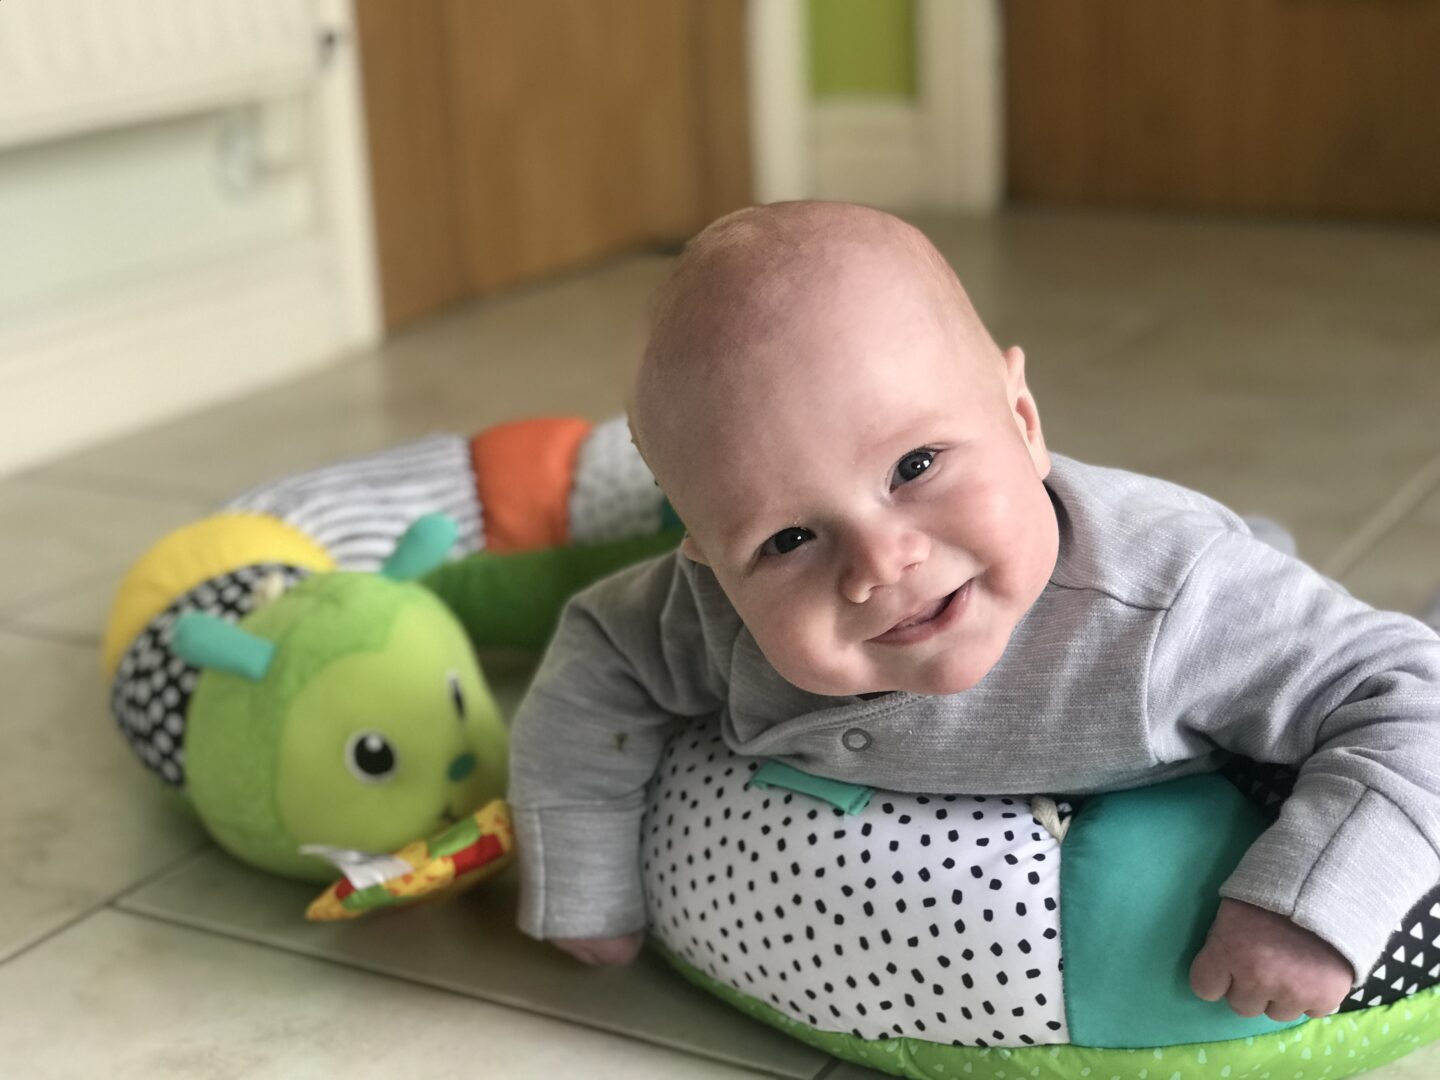 Felix using the Infantino Prop-a-Pillar tummy time support in the kitchen smiling happily